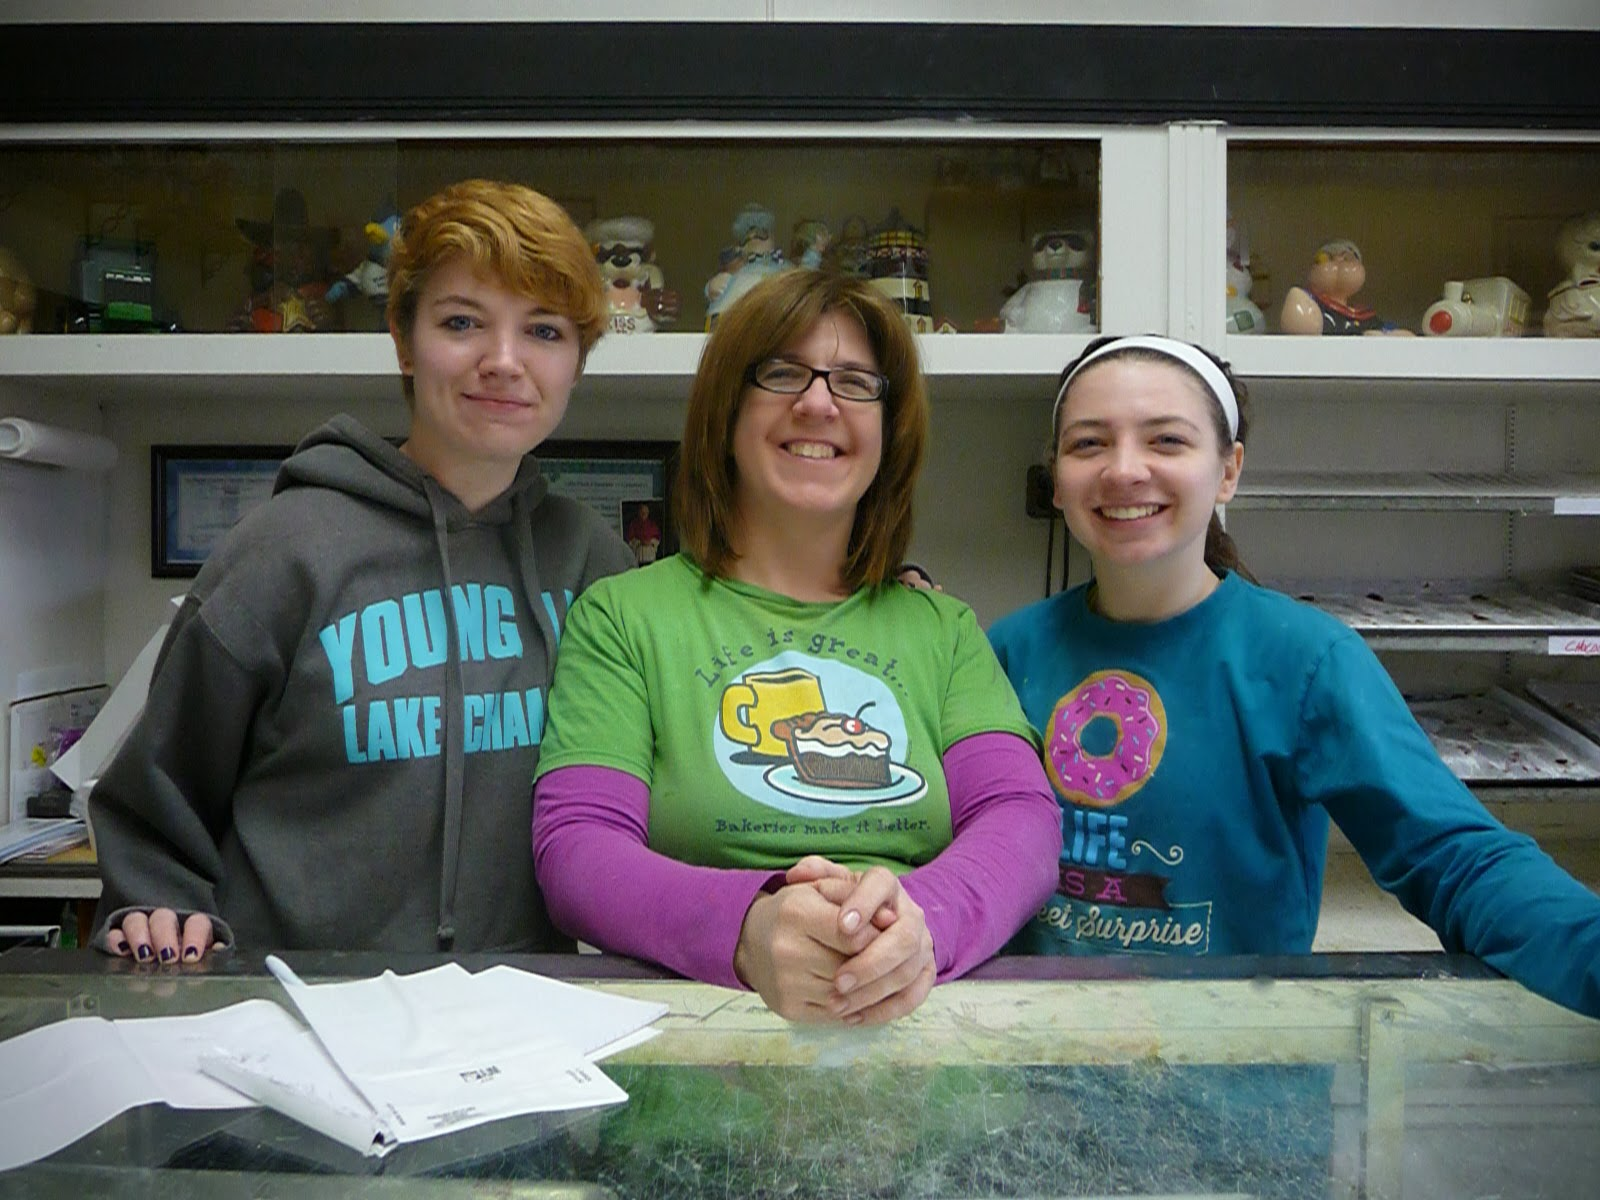 Robbie, Dawn, and Kasie Hanrahan, Kuppie's Bakery